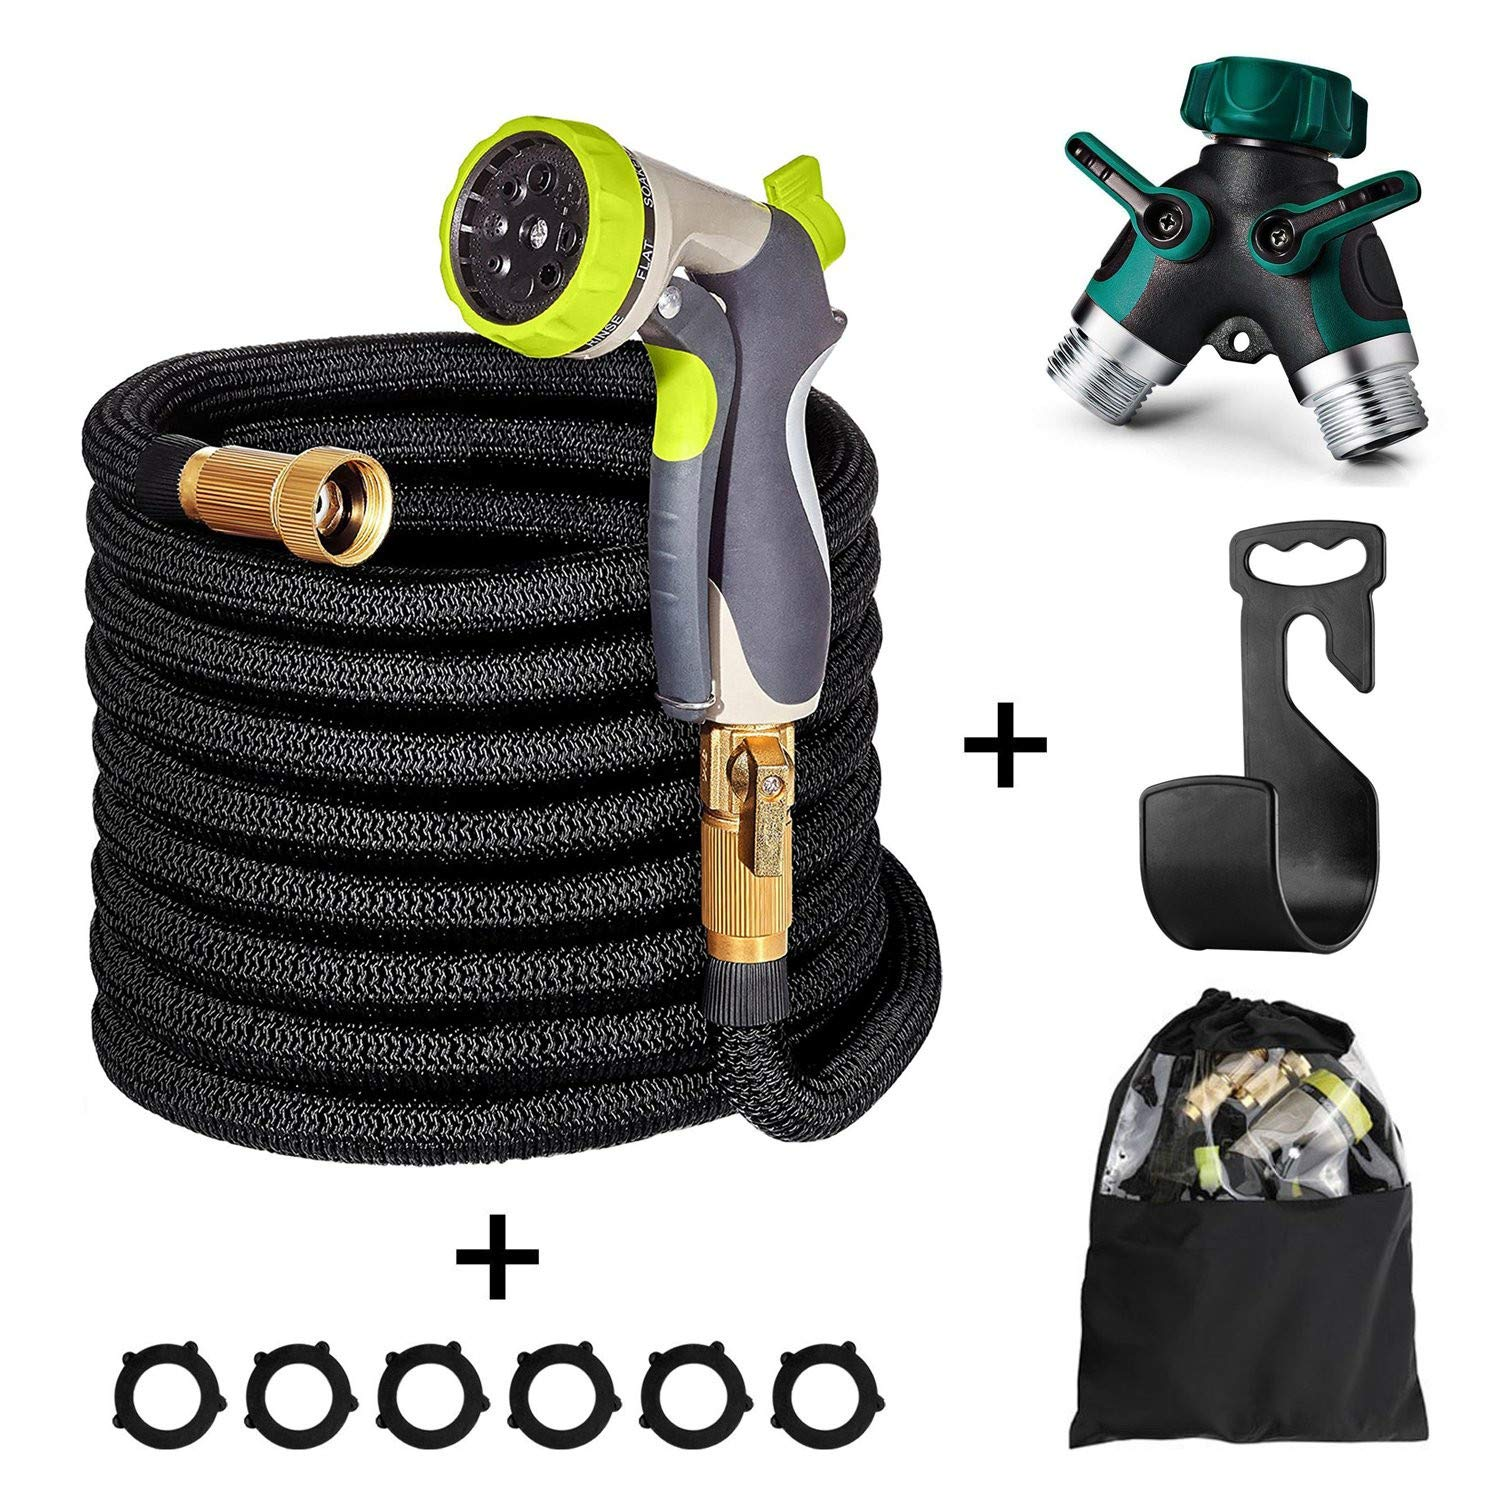 Yamoo Premium Hose - 75ft Flexible Expandable High Pressure Water Garden Hose with All Brass Connectors, Heavy Duty Metal 8-Way Spray Nozzle, Wall Mount, 2 Way Y Hose Connector, and Storage Bag